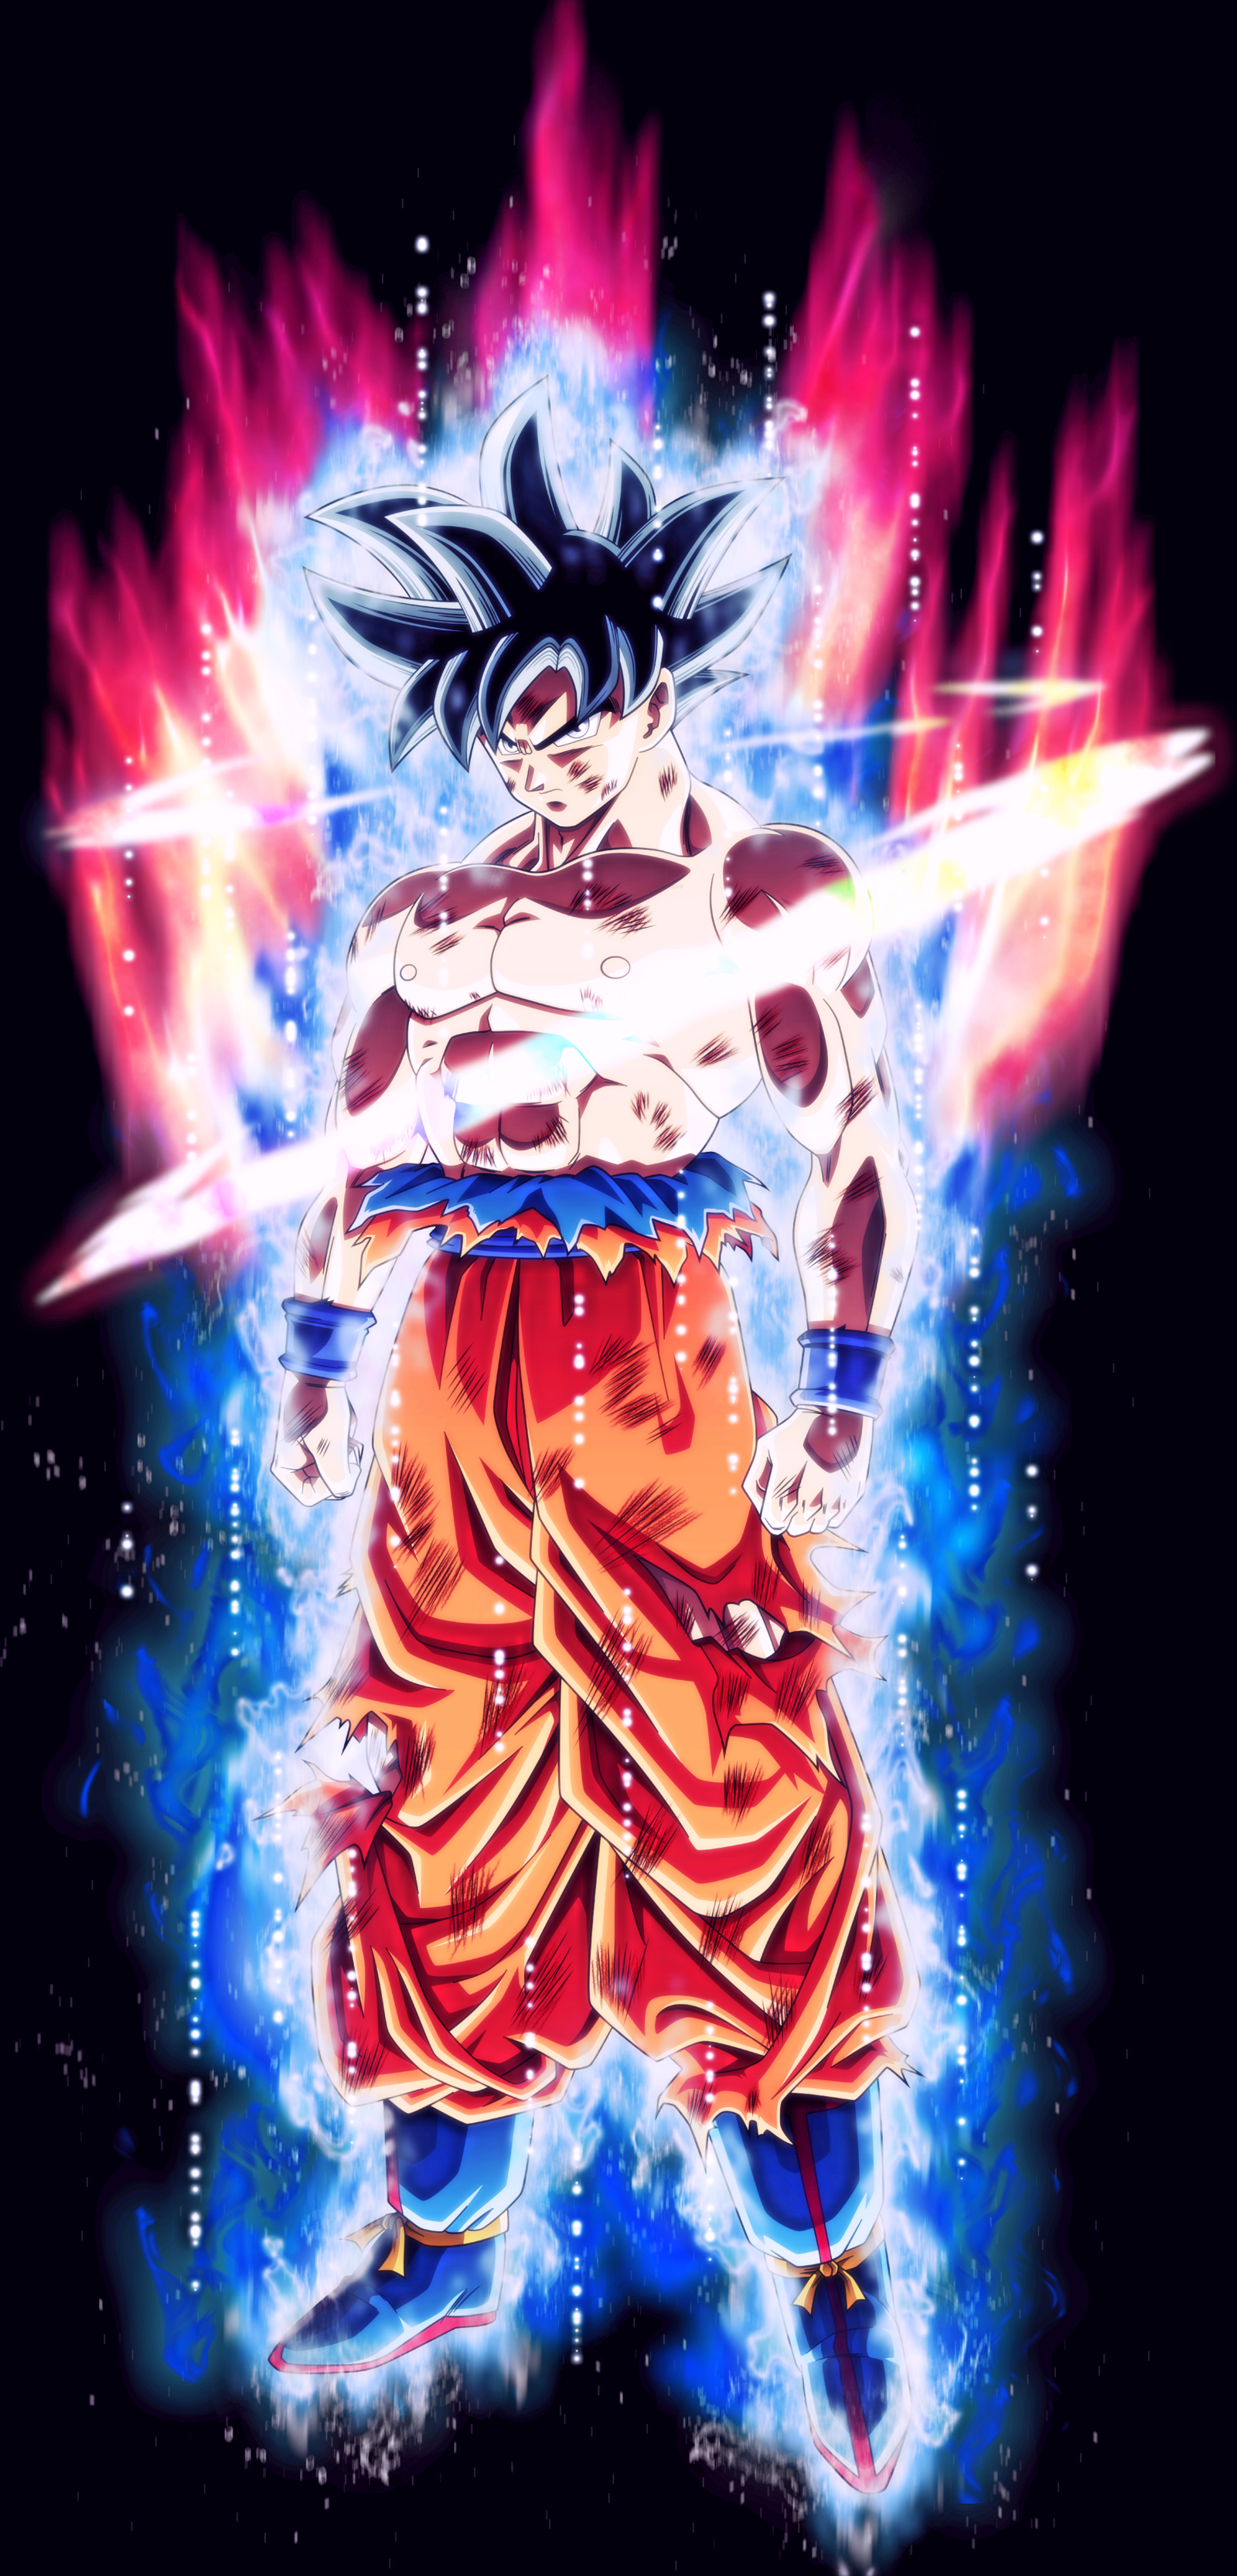 Dragon Ball Z Kai Final Chapters Pantalla De Goku Fondos De Pantalla Goku Dragon Ball Gt